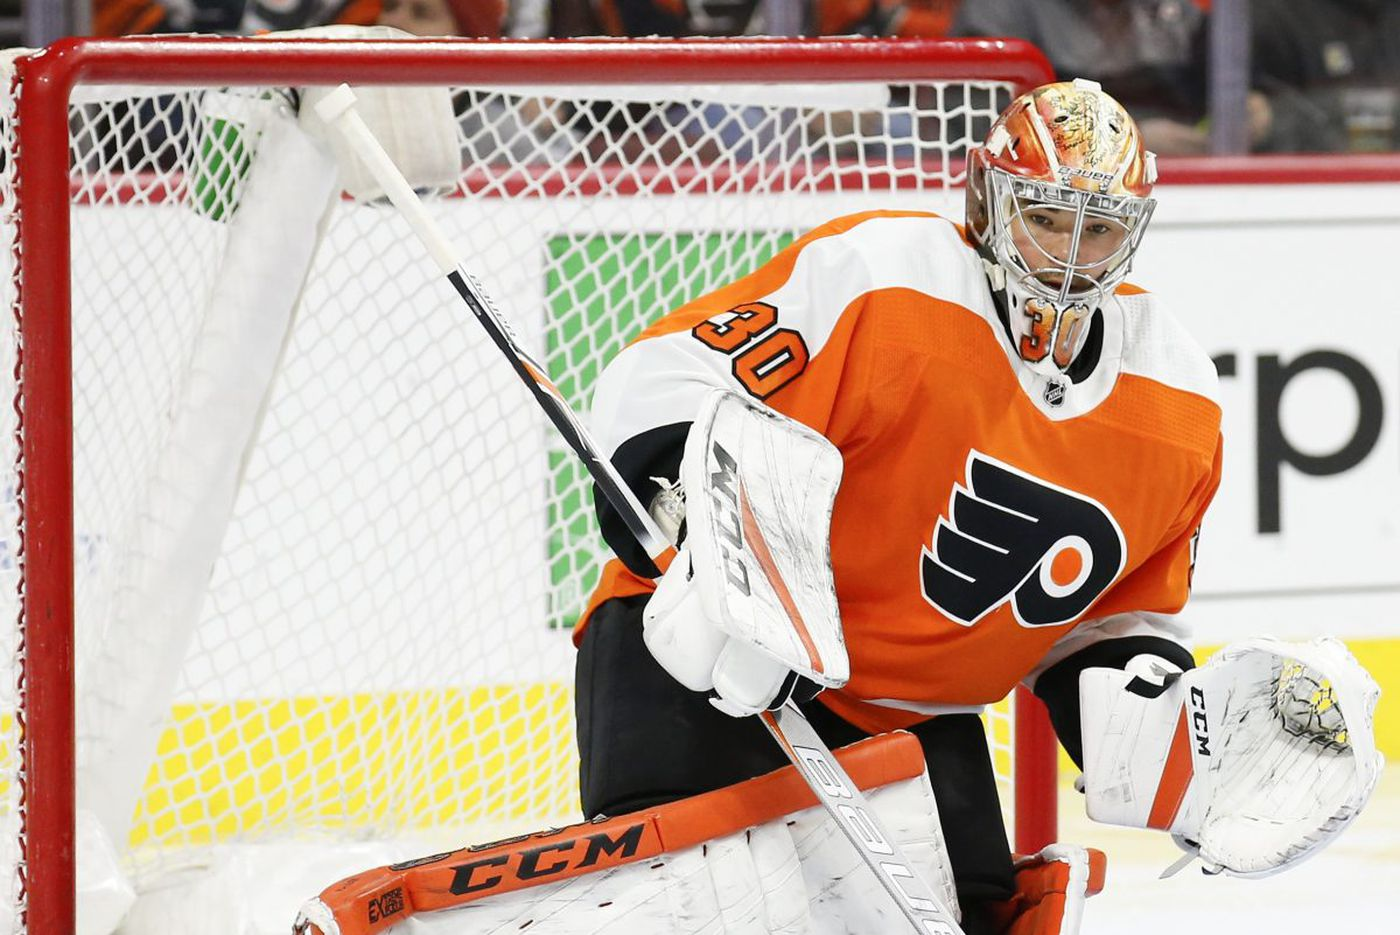 Goalie Michal Neuvirth hopes to play on Flyers' next road trip